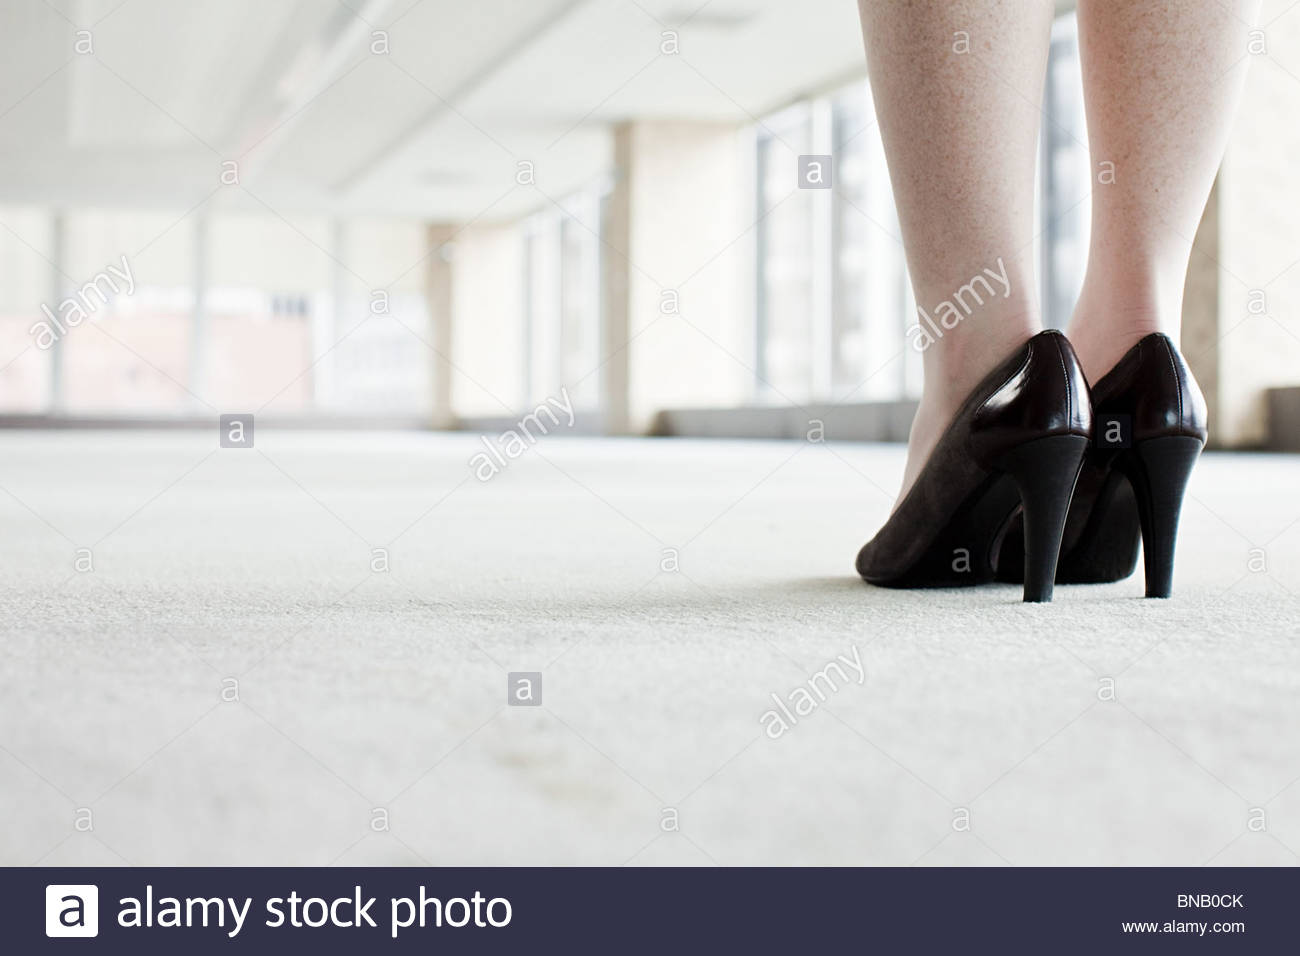 Chaussures de woman in office Photo Stock